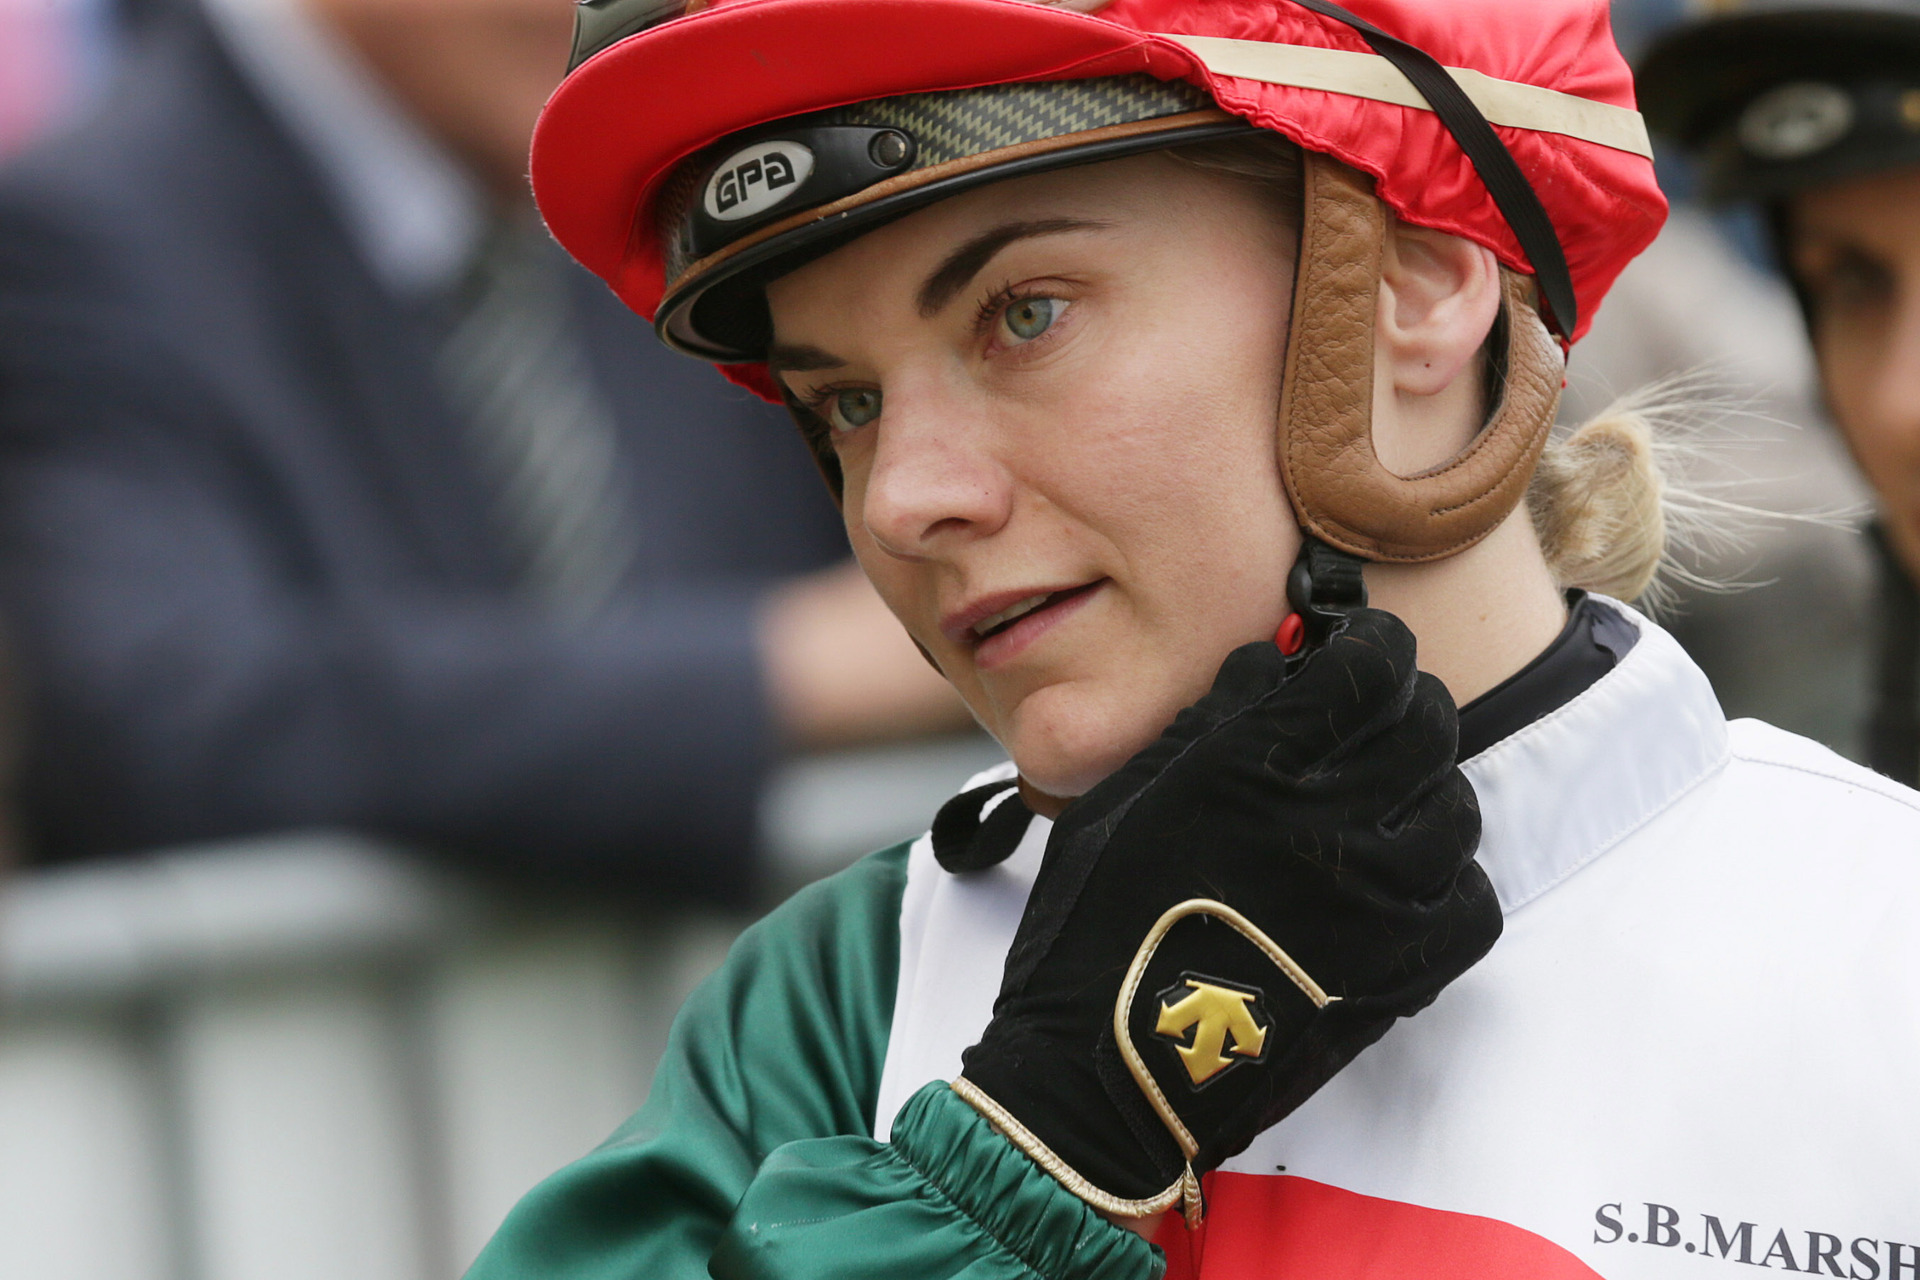 Racing: Danielle Johnson keen to get back in the saddle